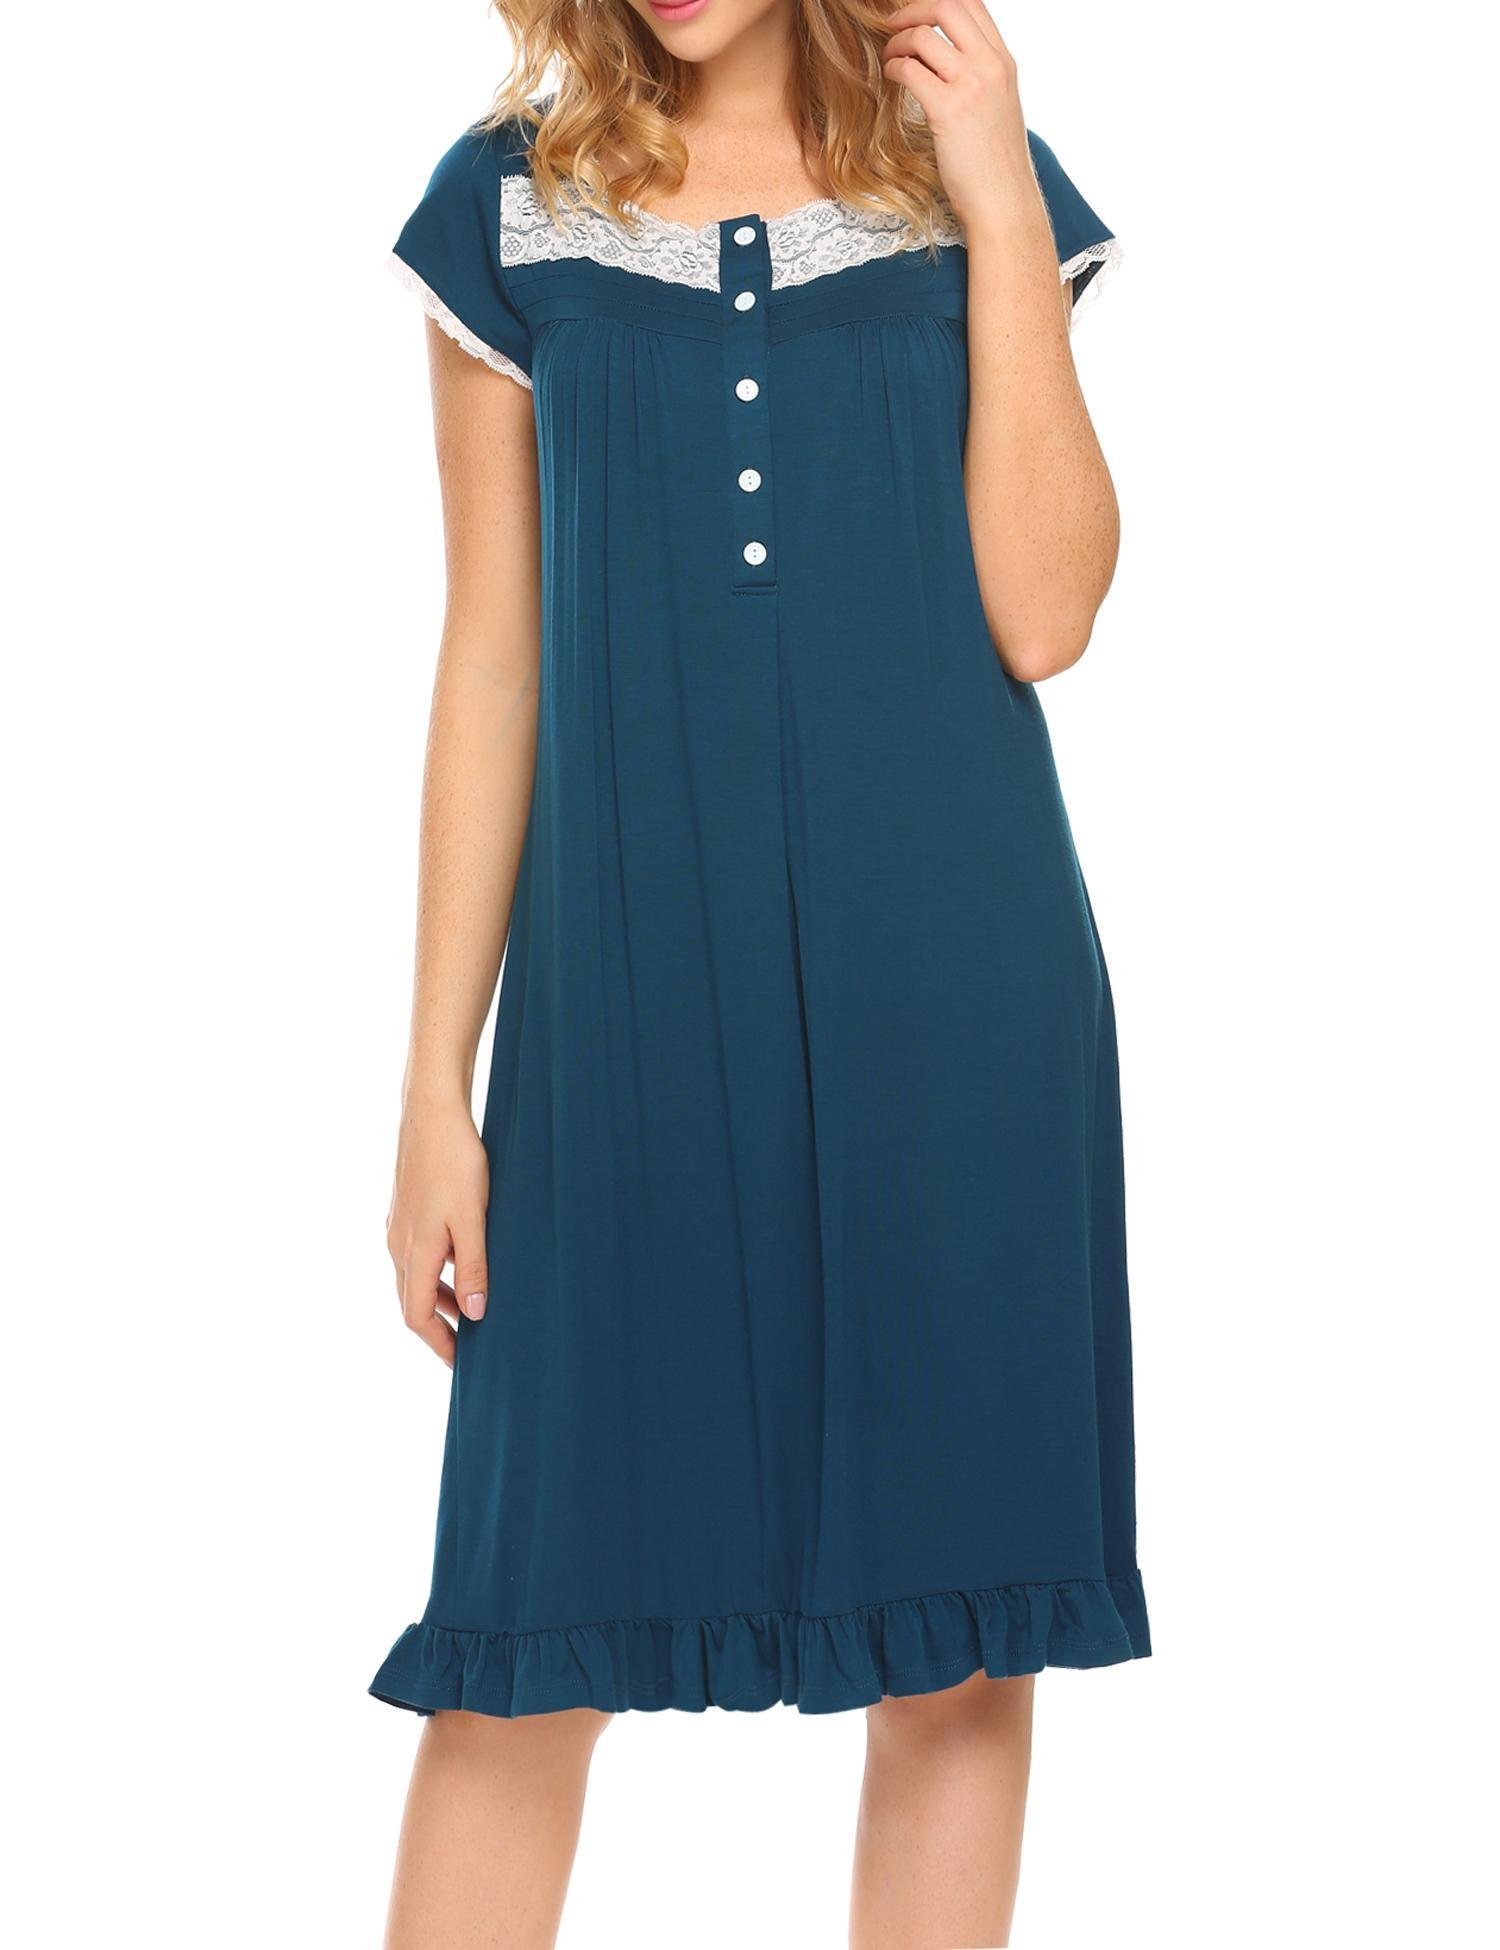 Women's Night Gowns Short Sleeve Button-Down Sleepshirt House Dress,Blue,Large by DonKap (Image #2)